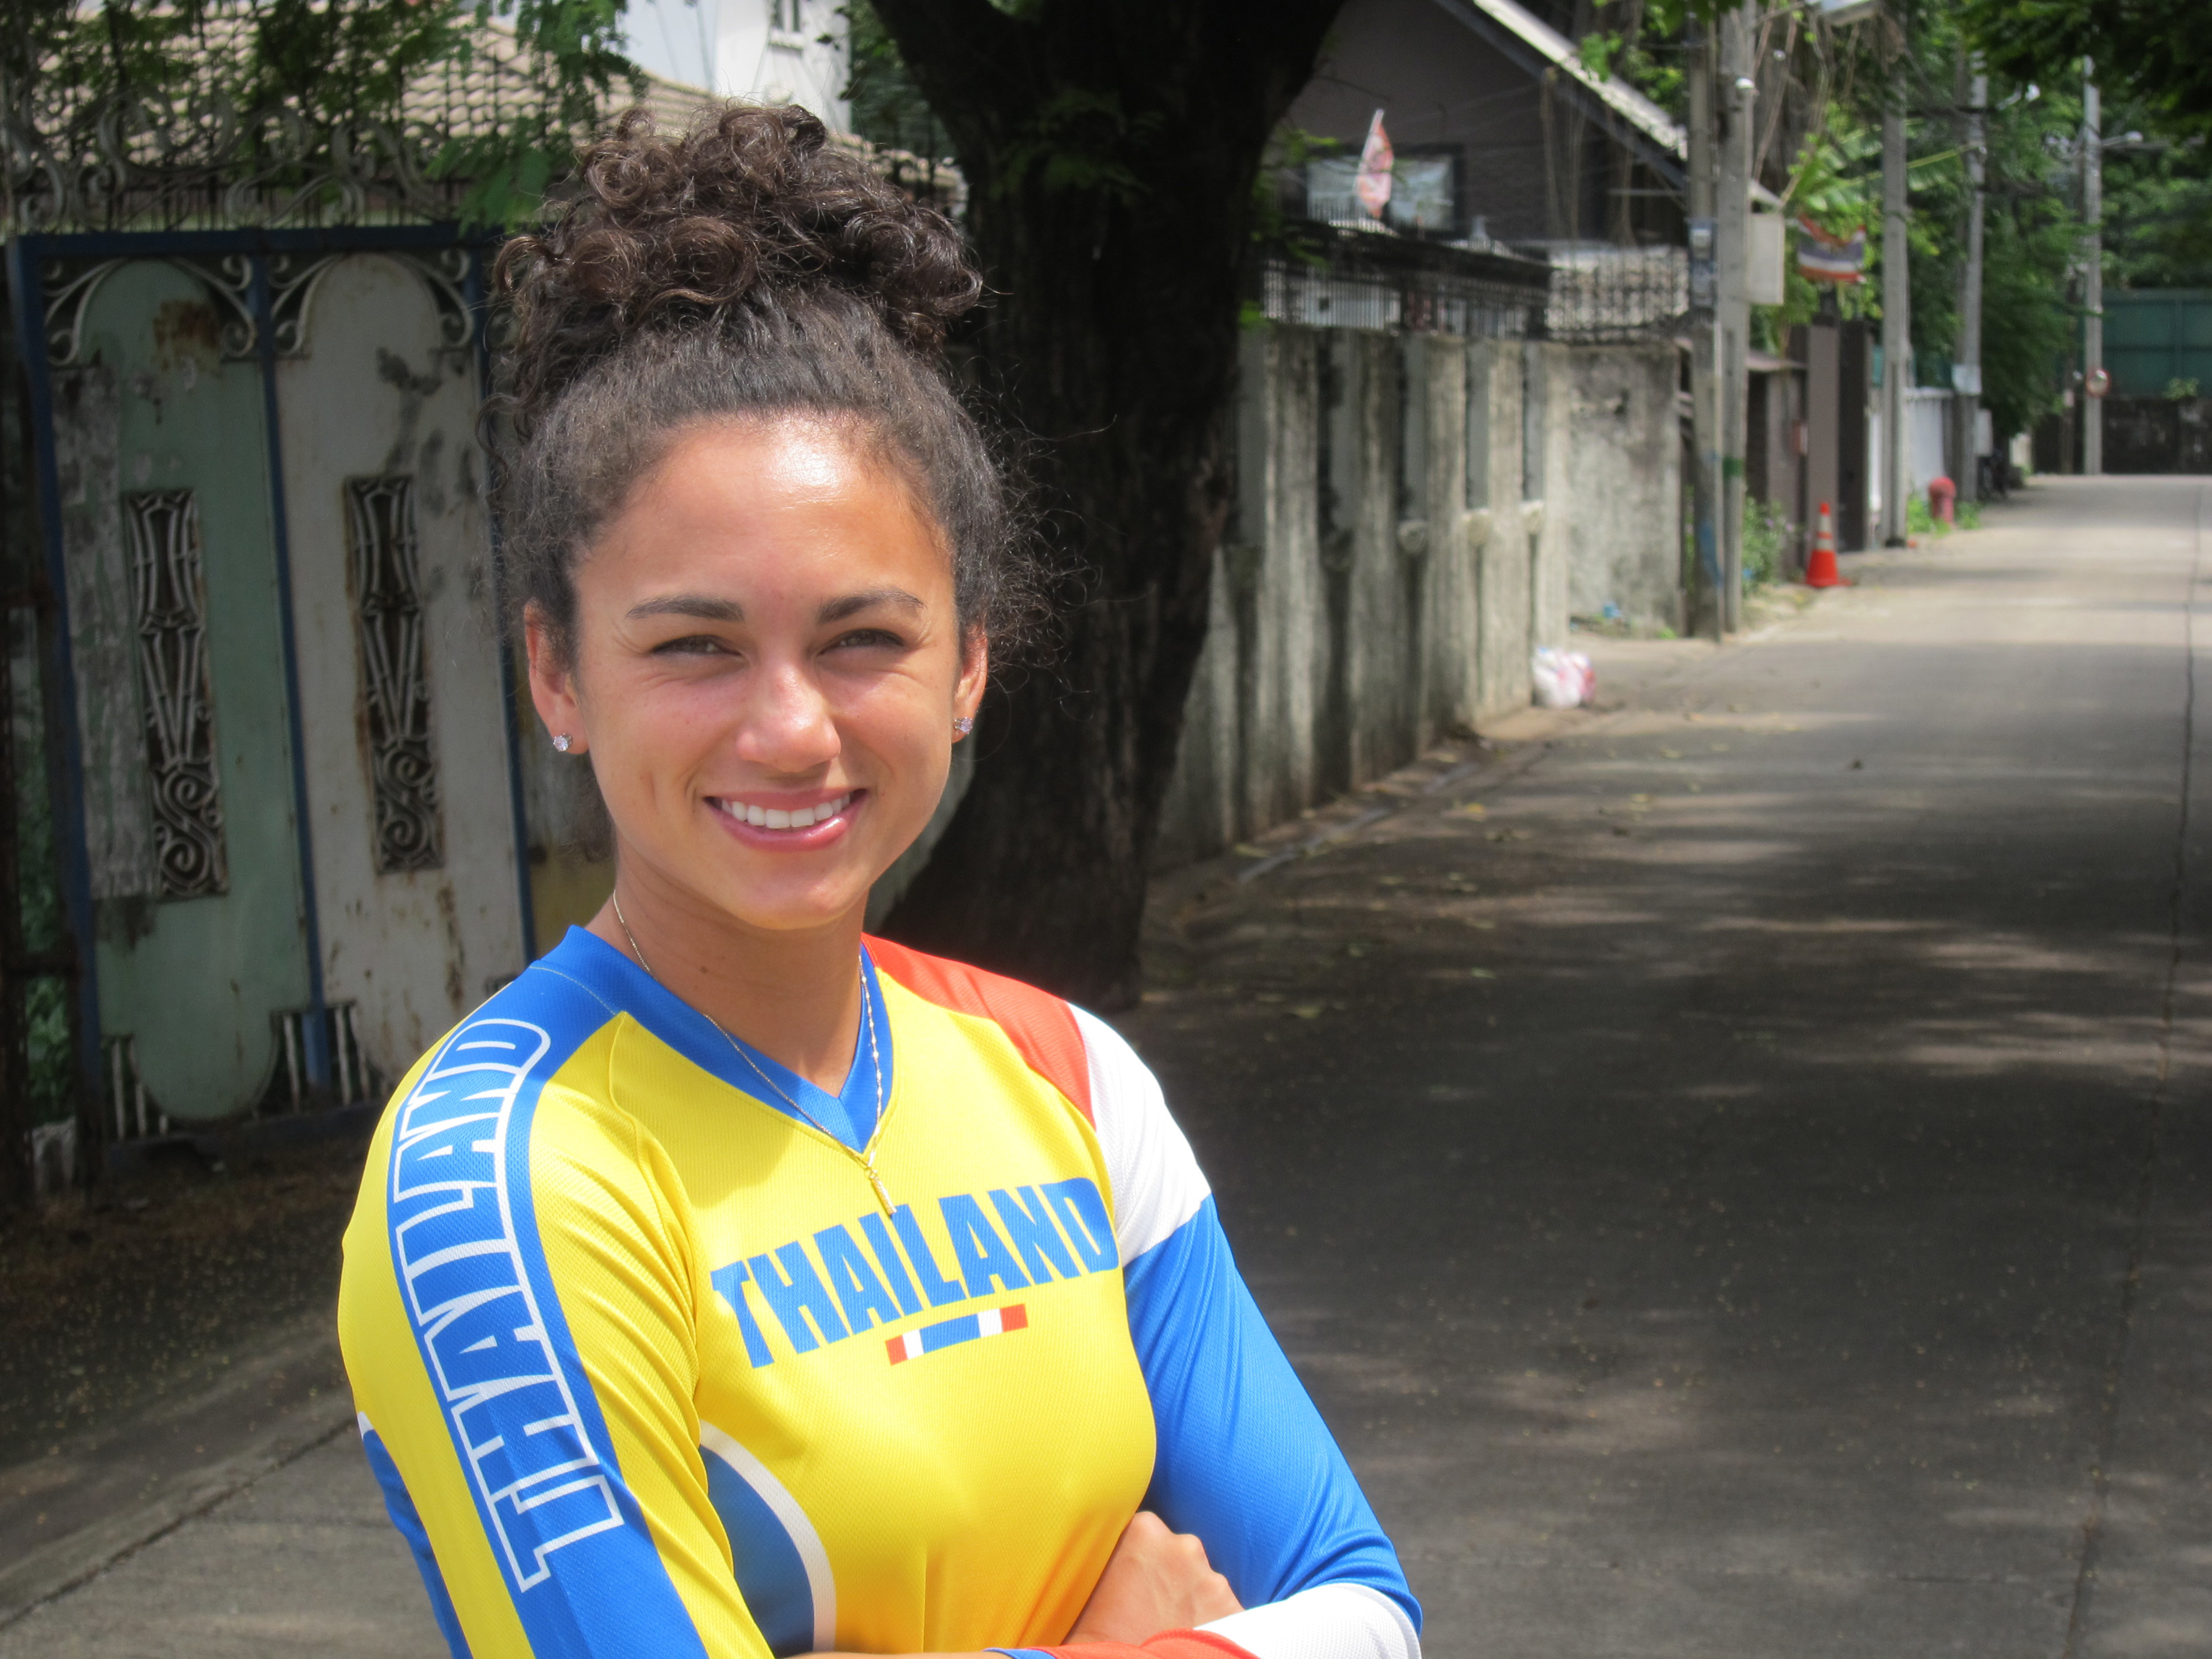 In this photo taken on Thursday, June 23, 2016, BMX rider Amanda Carr poses for a photograph during a visit to Bangkok, Thailand. Four years ago, Amanda Carr was coming to terms with the disappointment of not qualifying for the United States BMX team trav